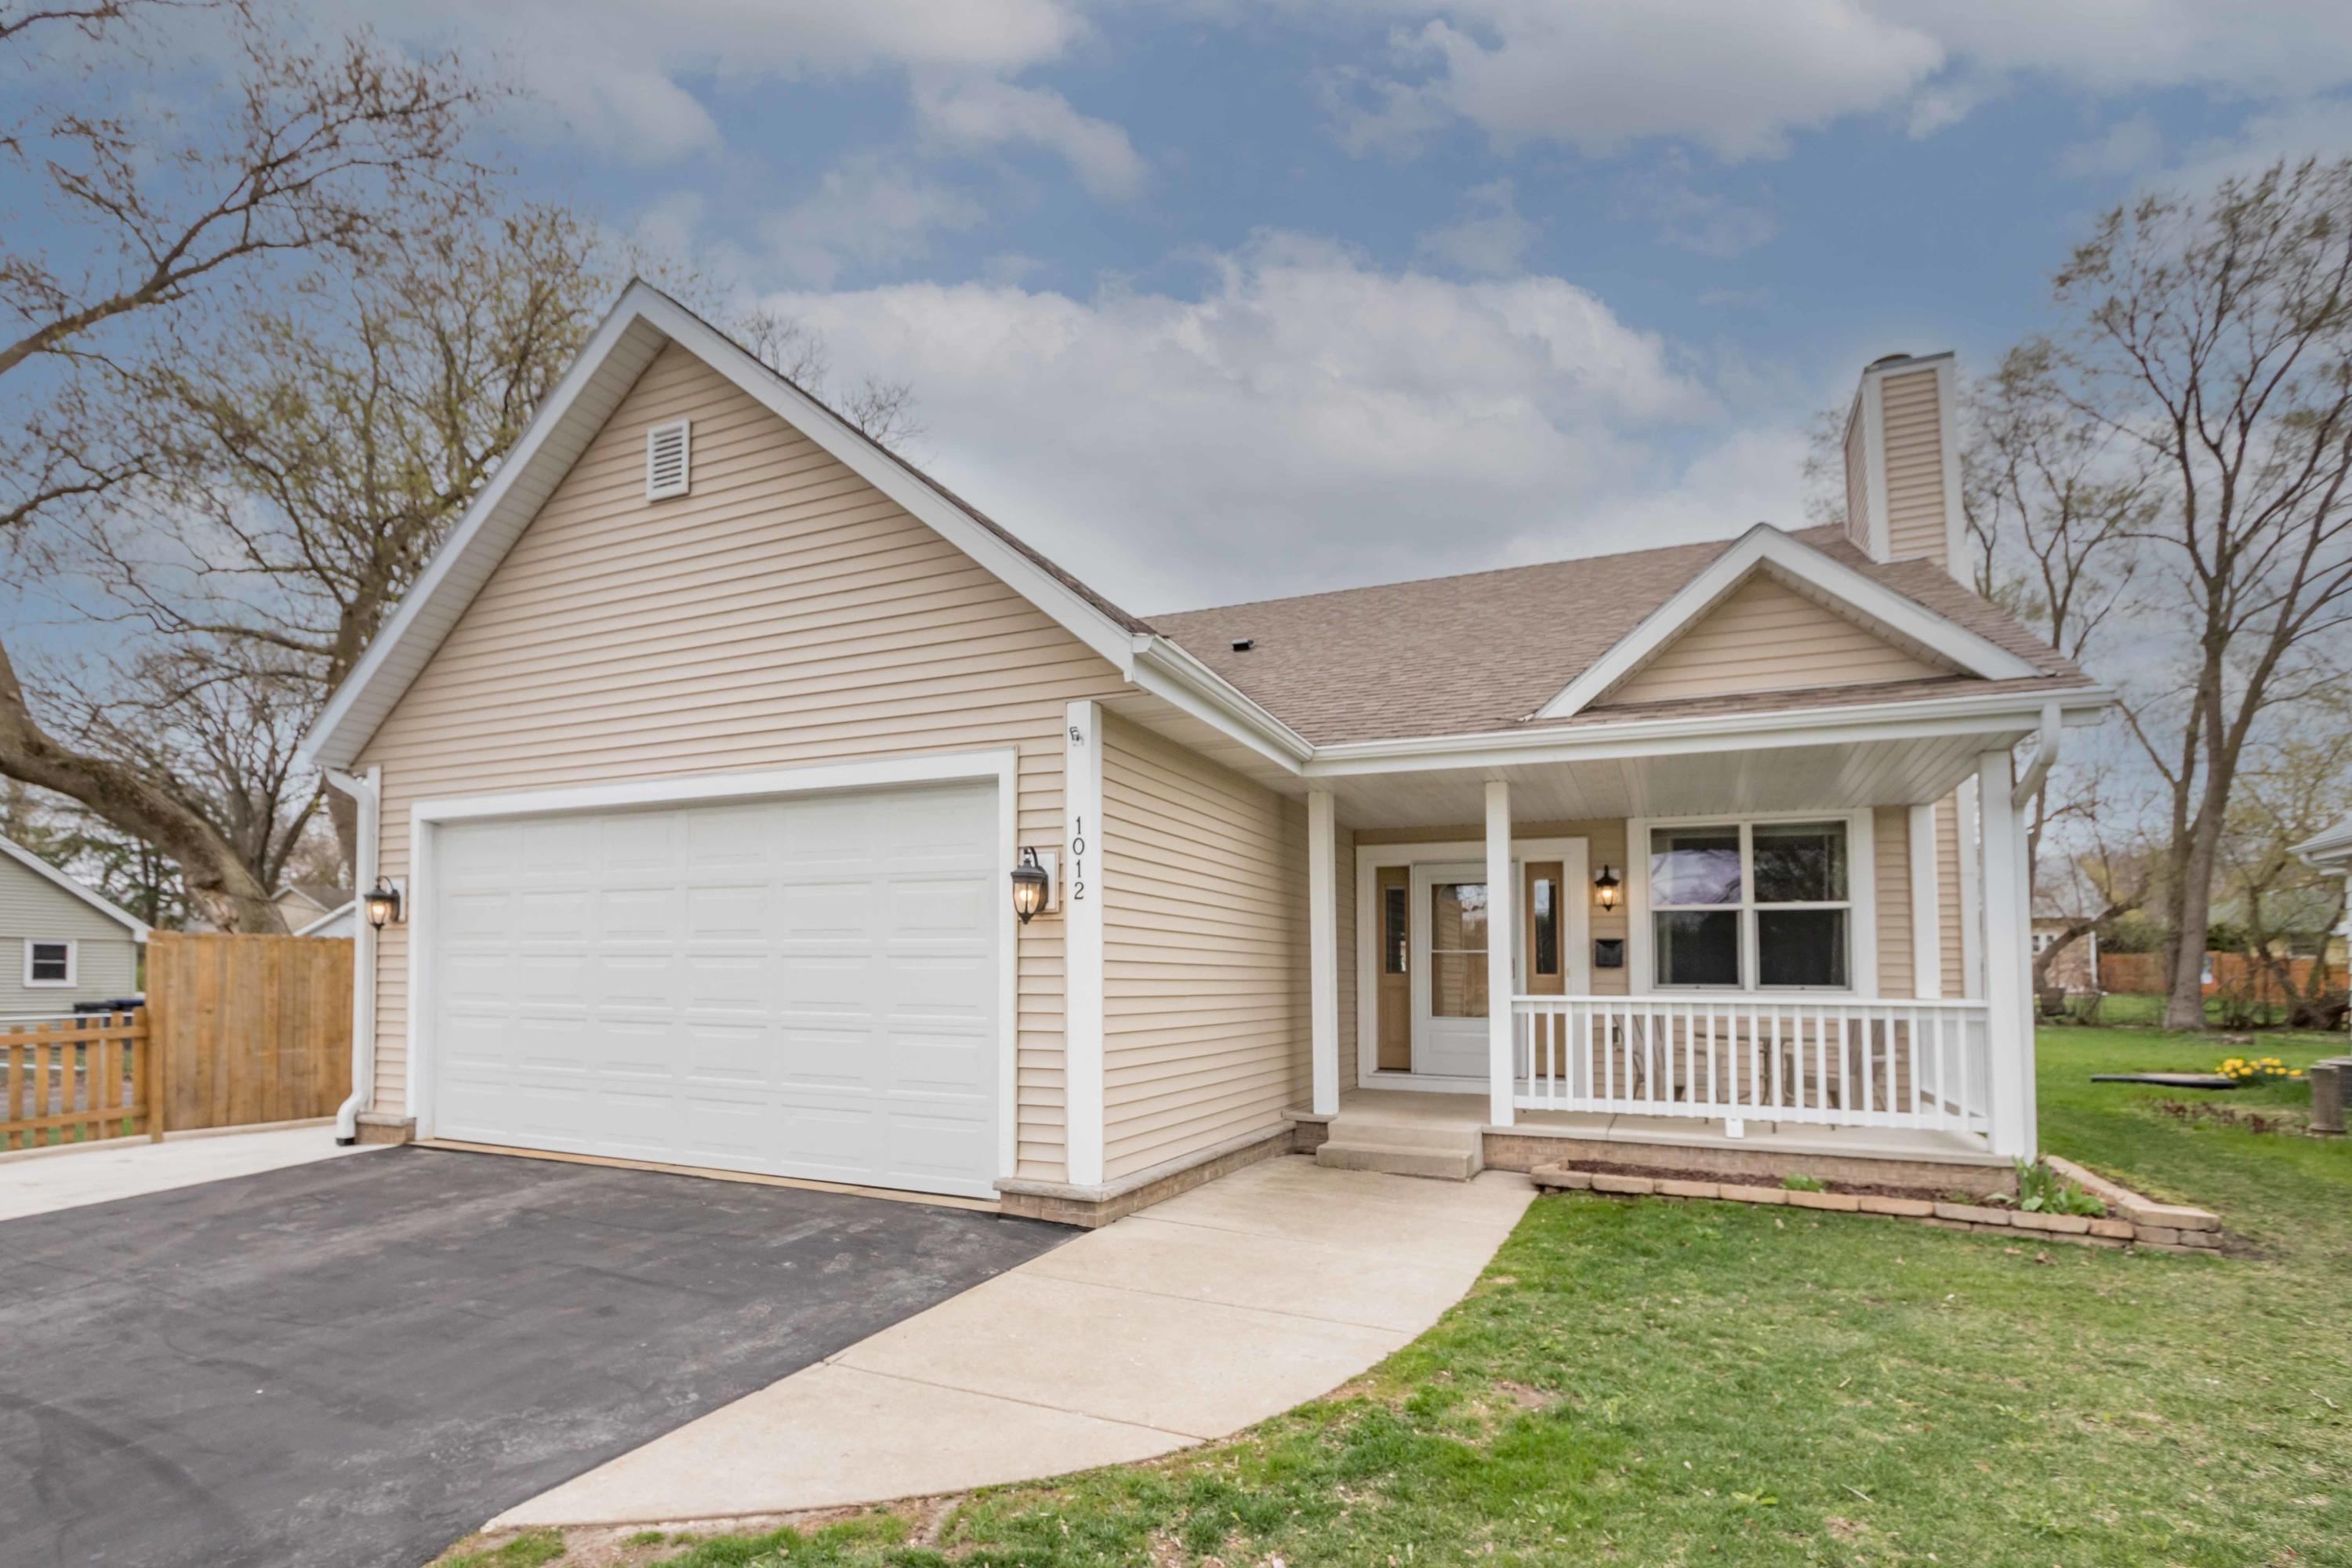 1012 Grandview Blvd, Waukesha, Wisconsin 53188, 3 Bedrooms Bedrooms, 6 Rooms Rooms,2 BathroomsBathrooms,Single-Family,For Sale,Grandview Blvd,1735250